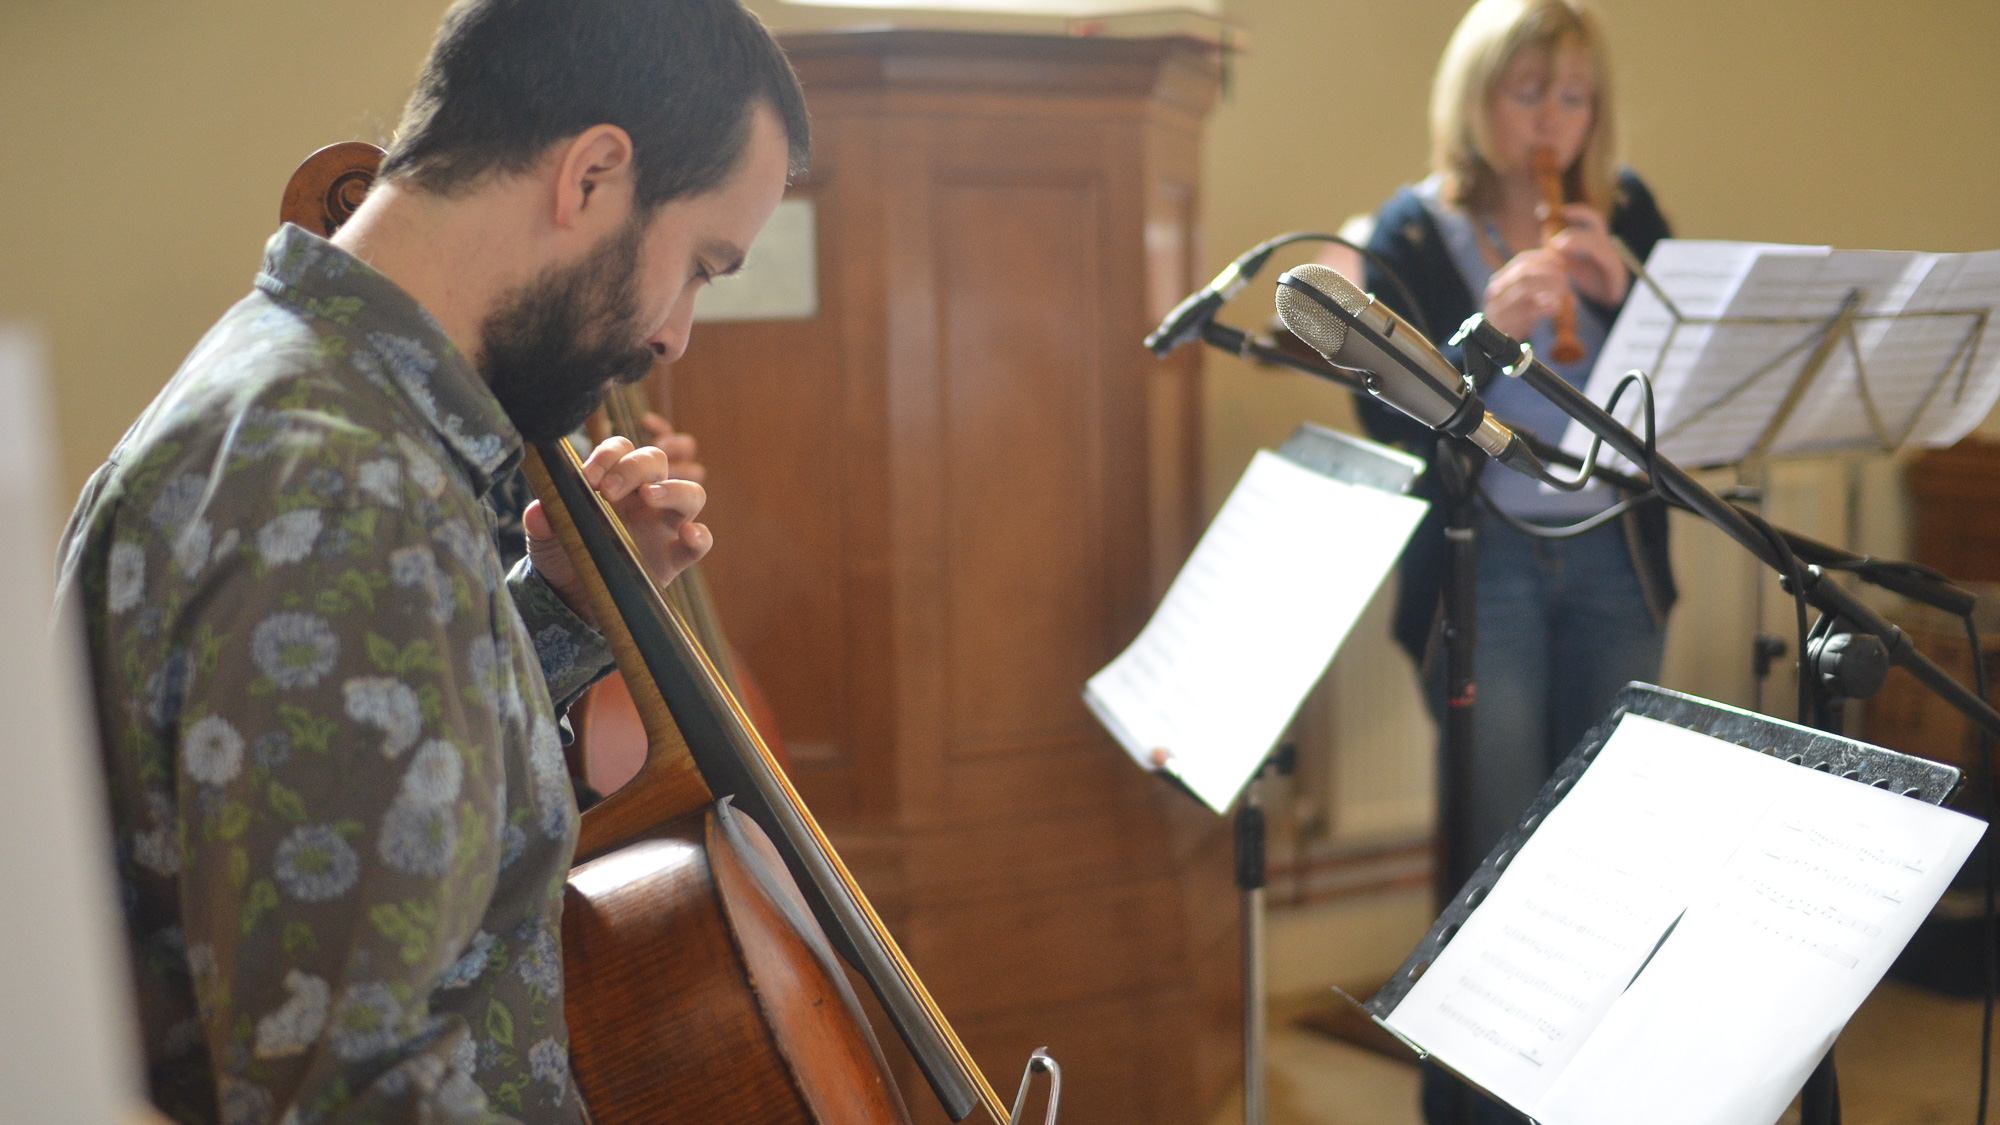 Passacaglia in recording session